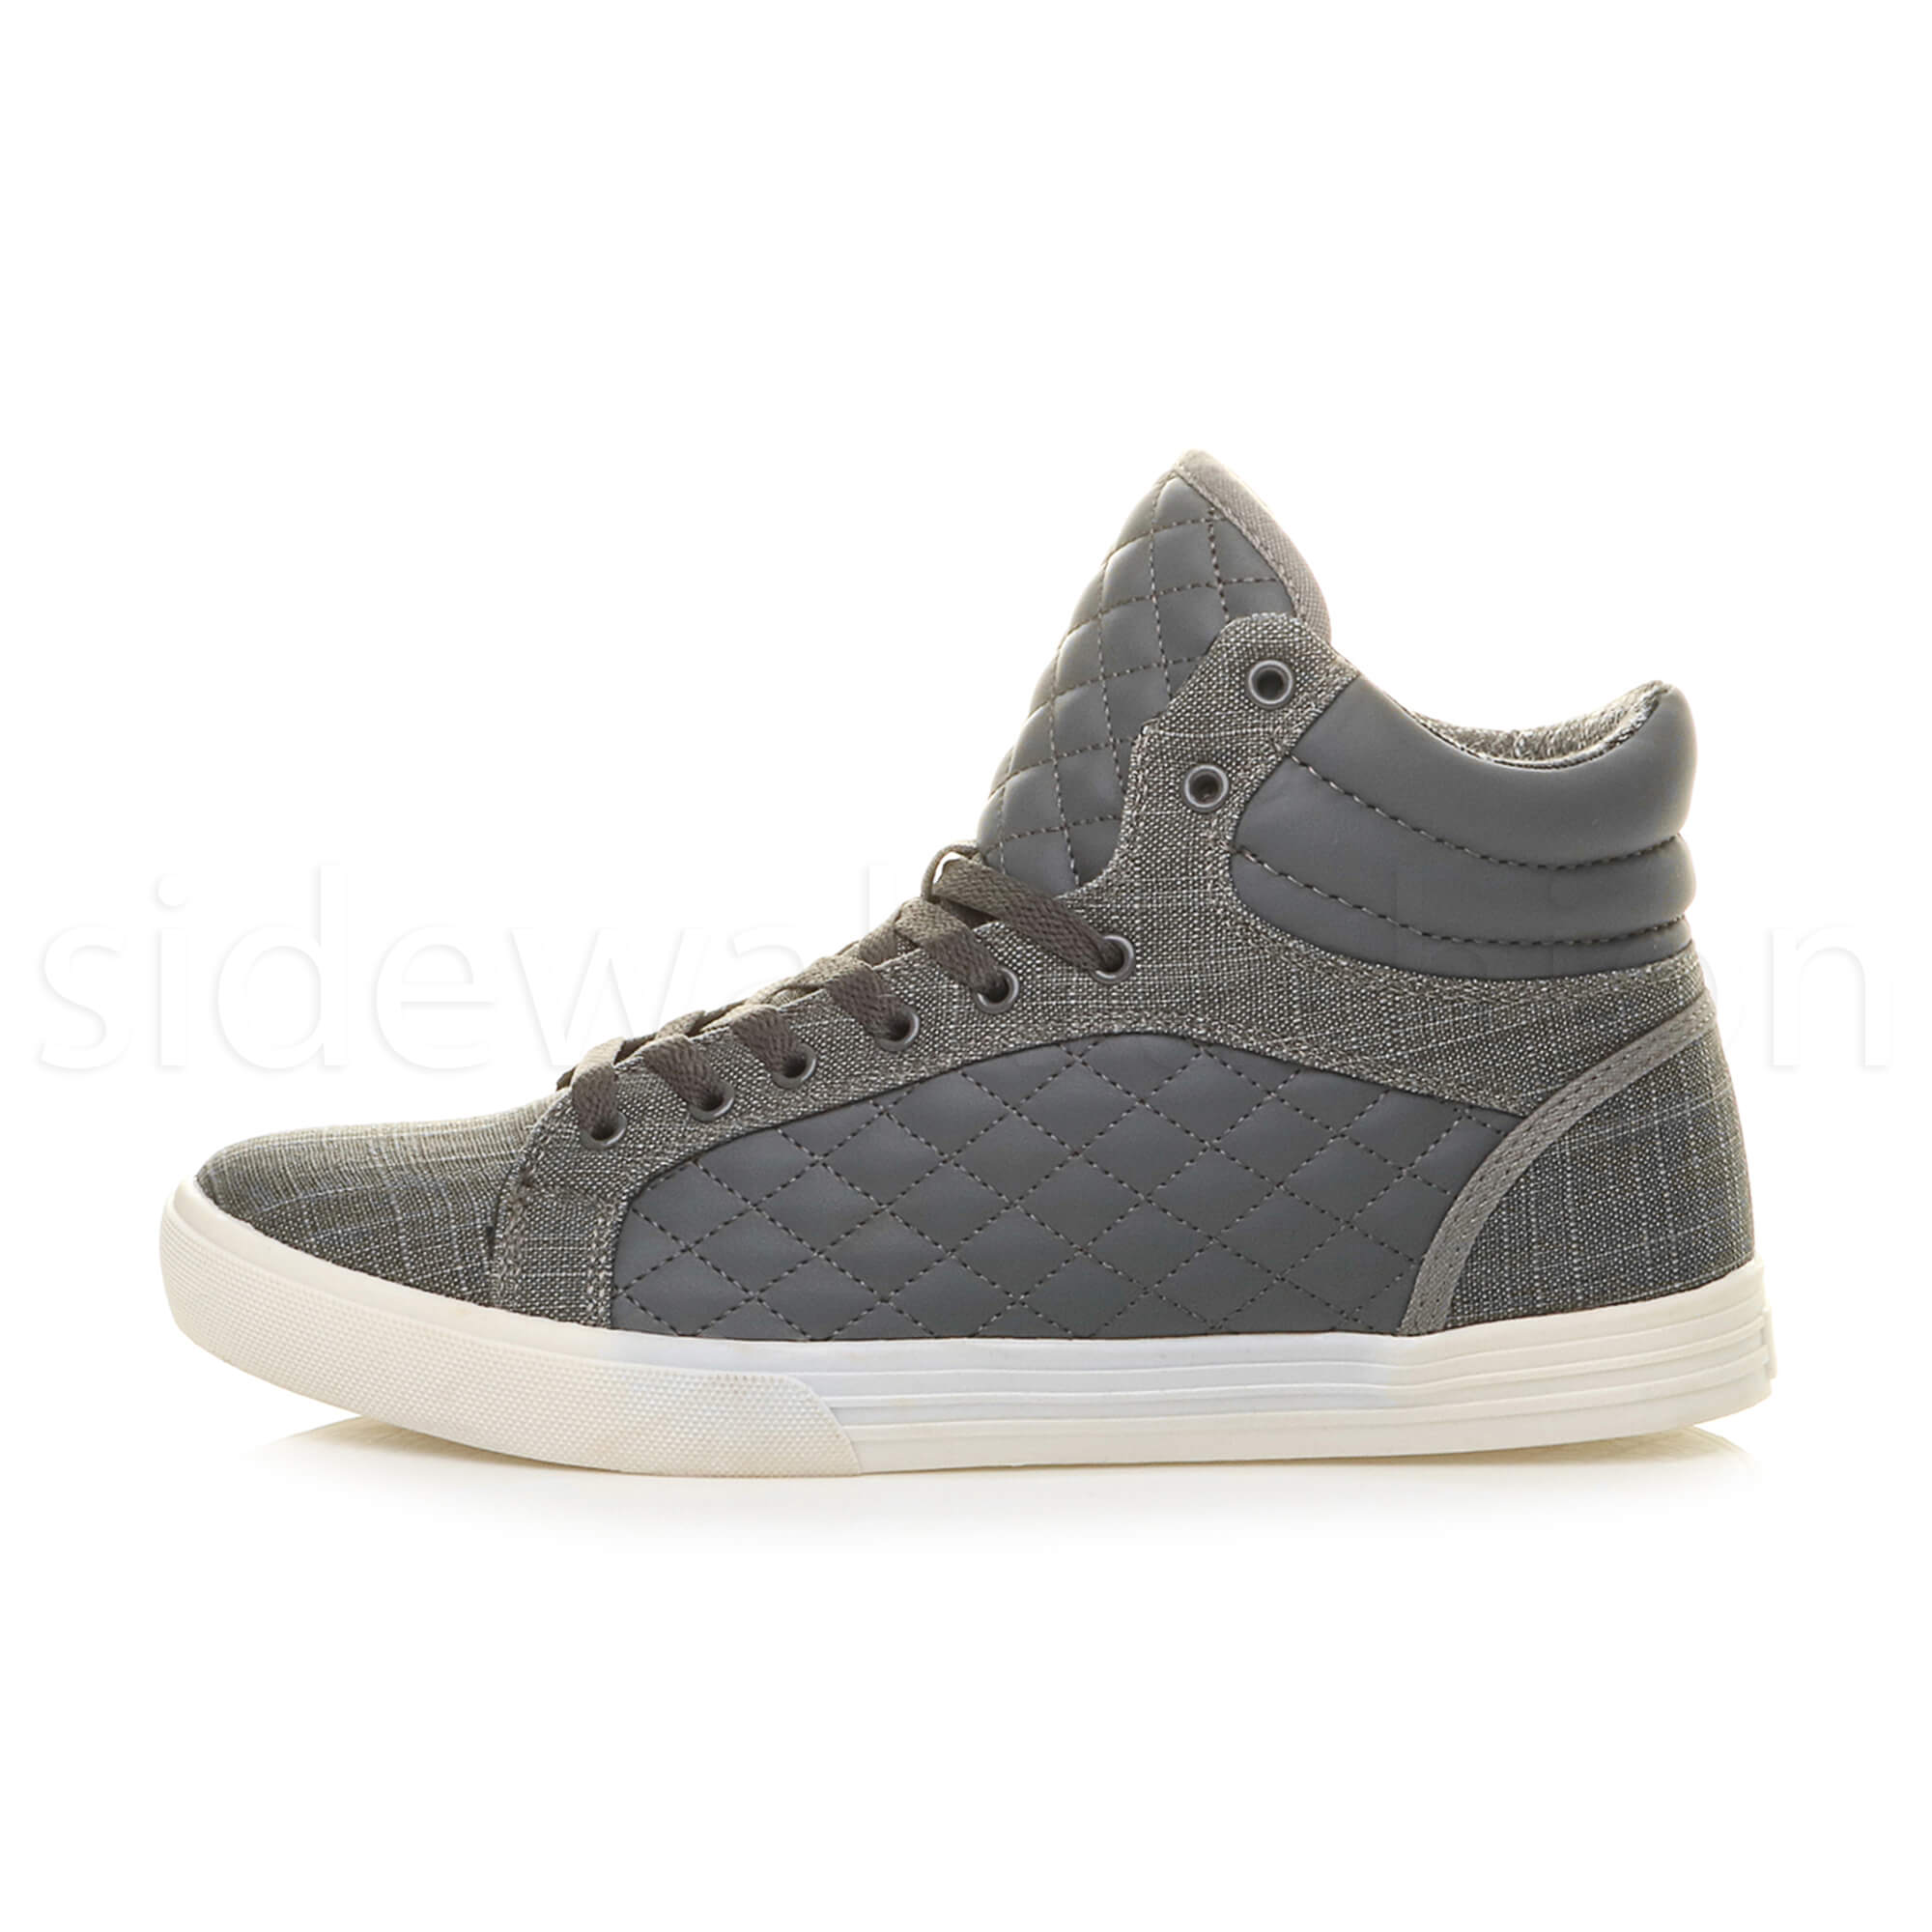 Mens-flat-lace-up-quilted-casual-hi-high-top-ankle-boots-trainers-sneakers-size thumbnail 10